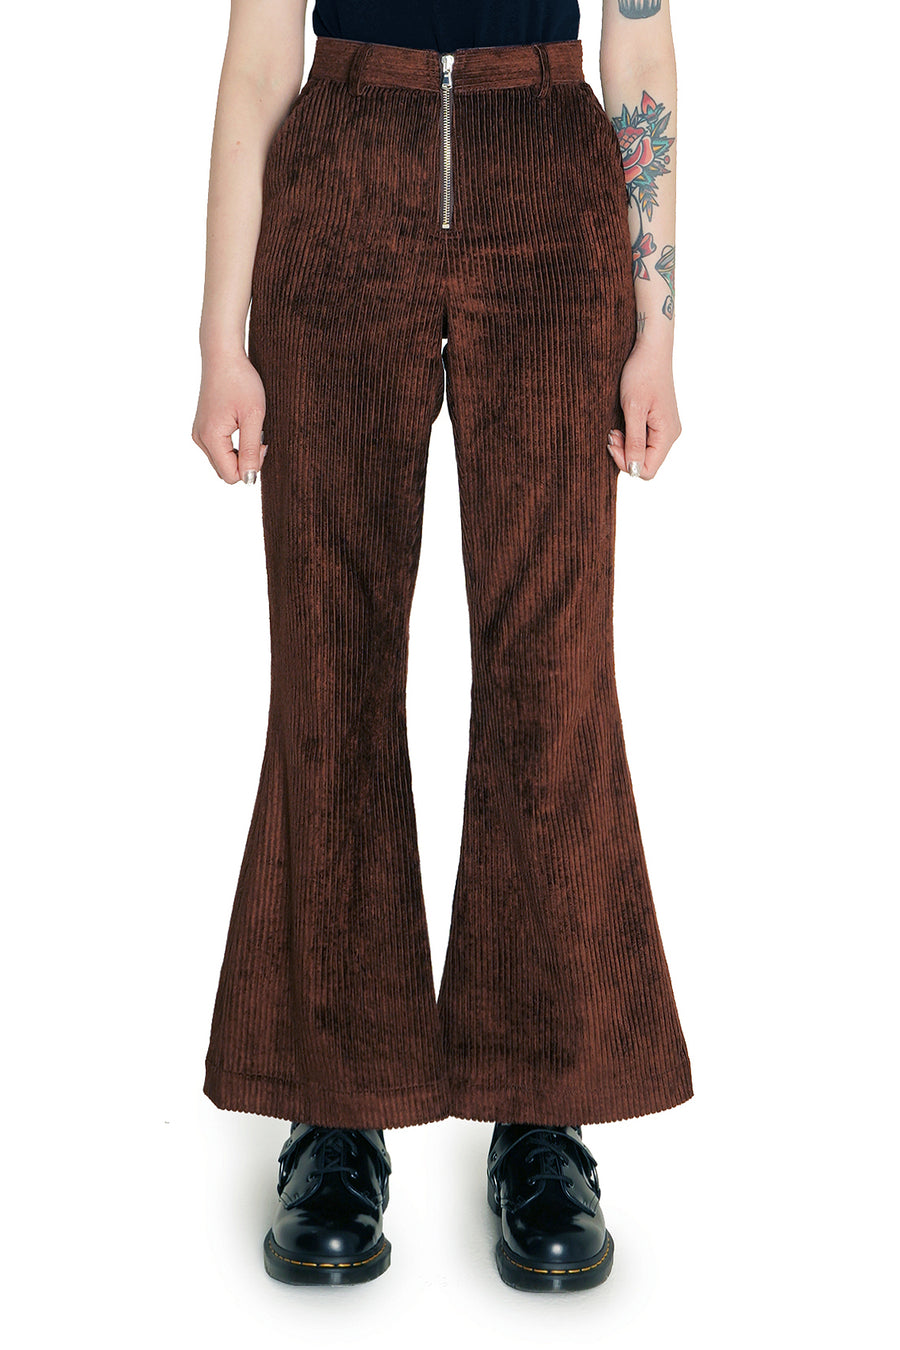 Brown Corduroy Flare Trousers